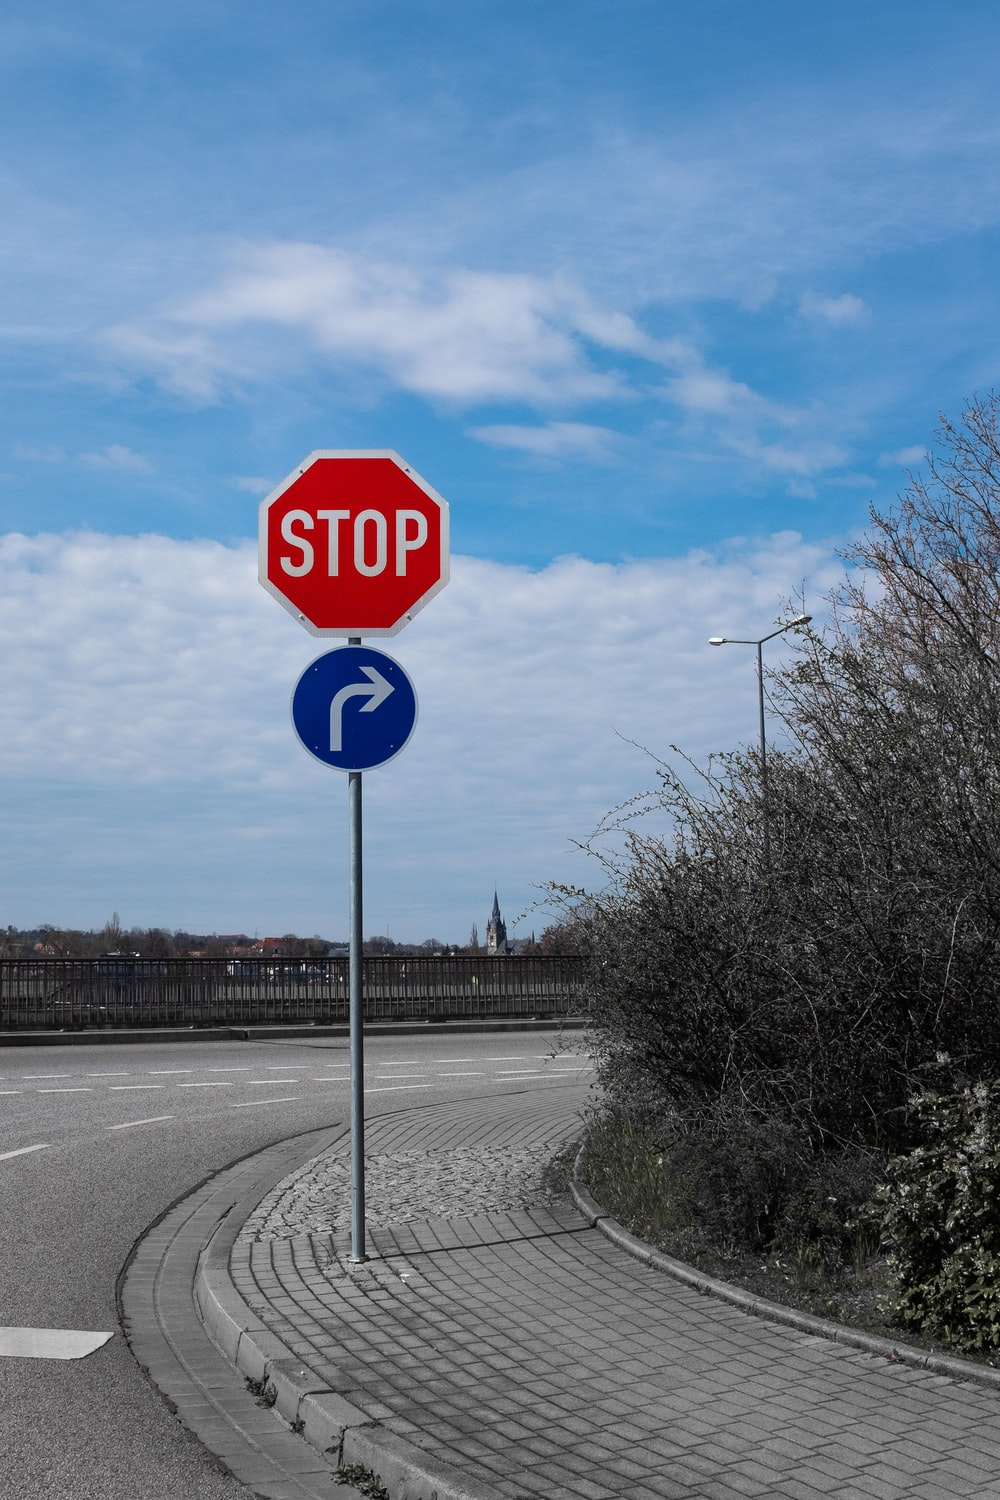 stop sign on road during daytime